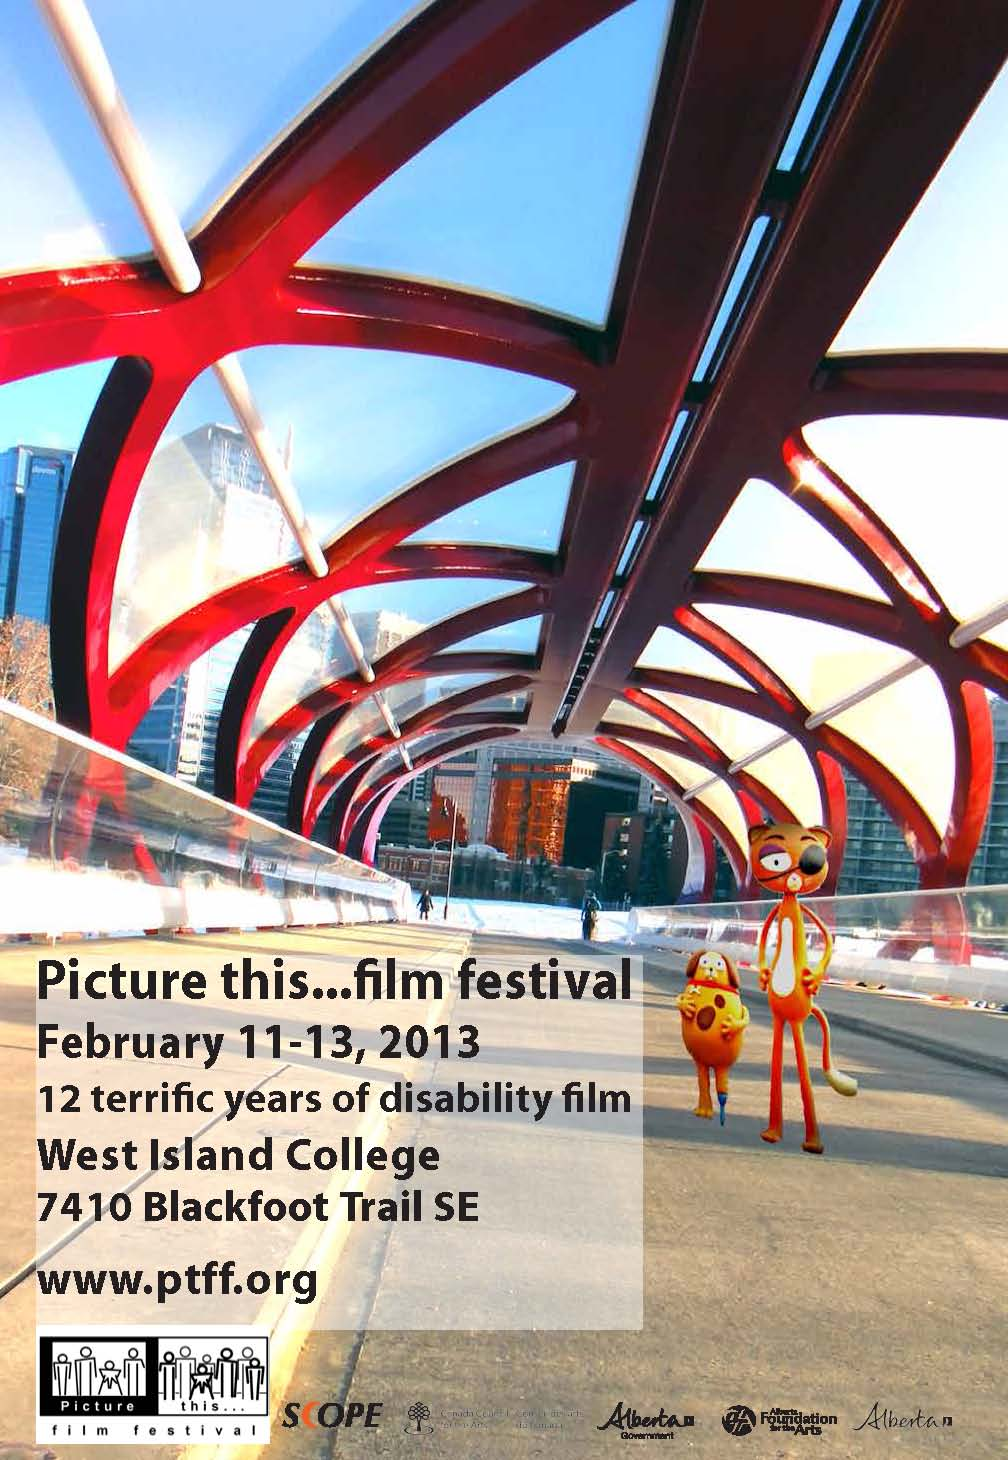 Picture this film festival February 11-13, 2013